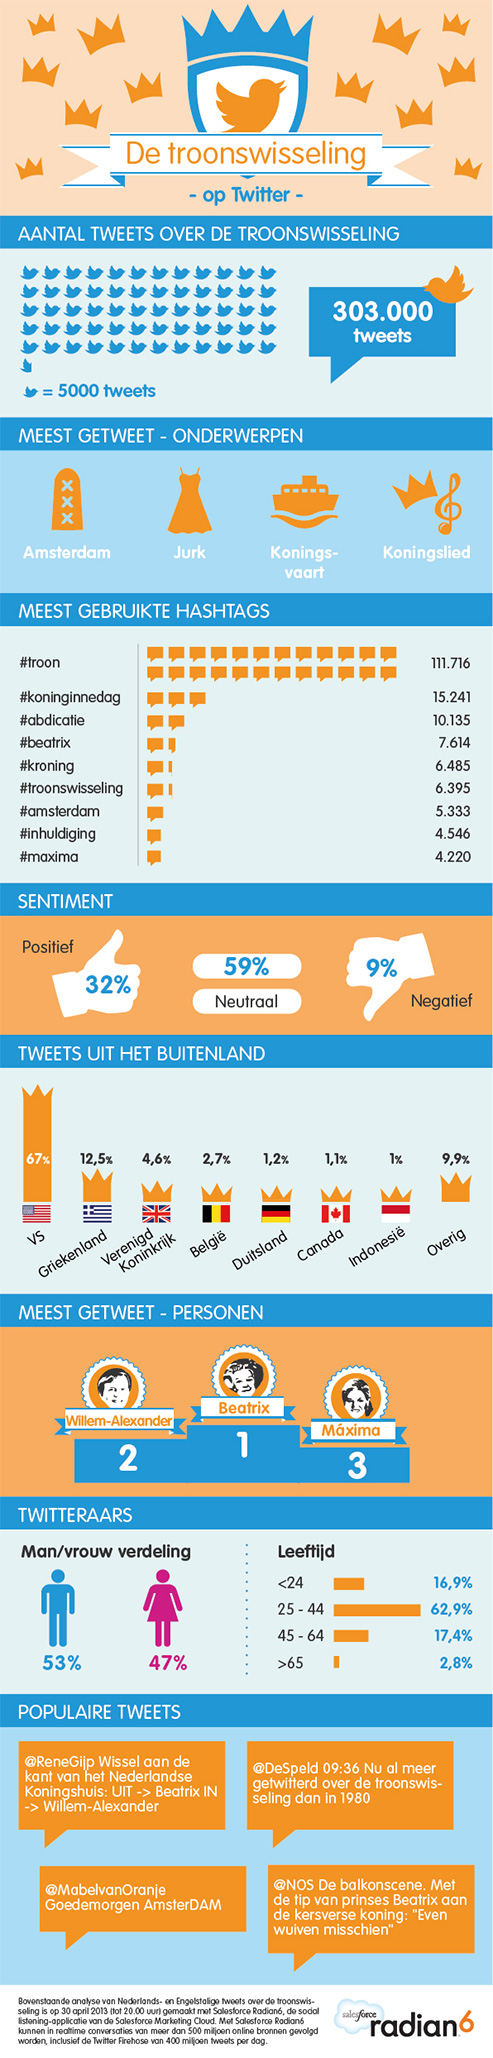 infographic_twitter_troonswisseling